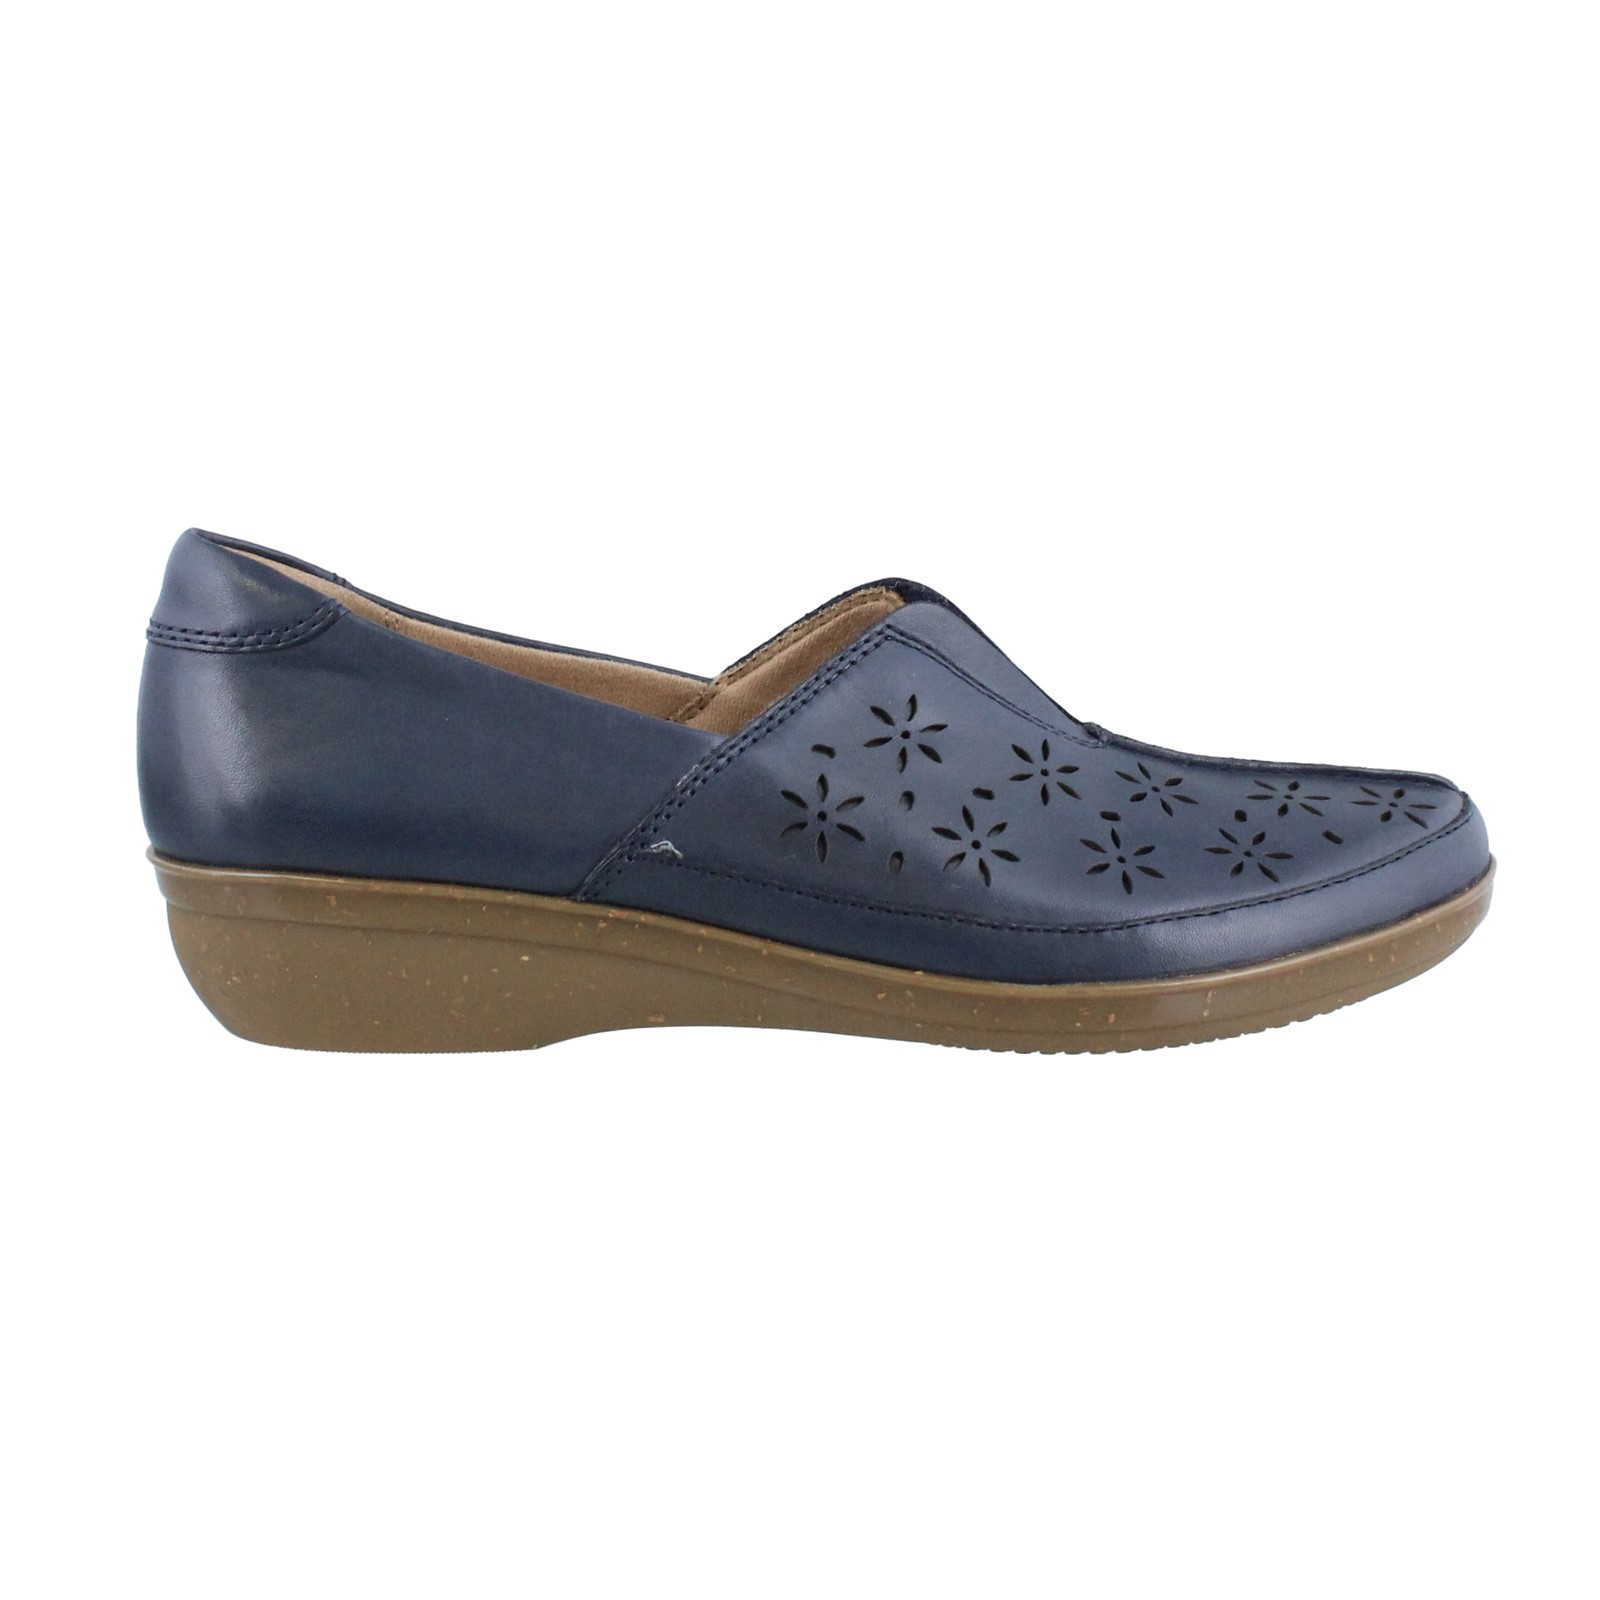 Women's Clarks, Everlay Dairyn Slip on Shoes